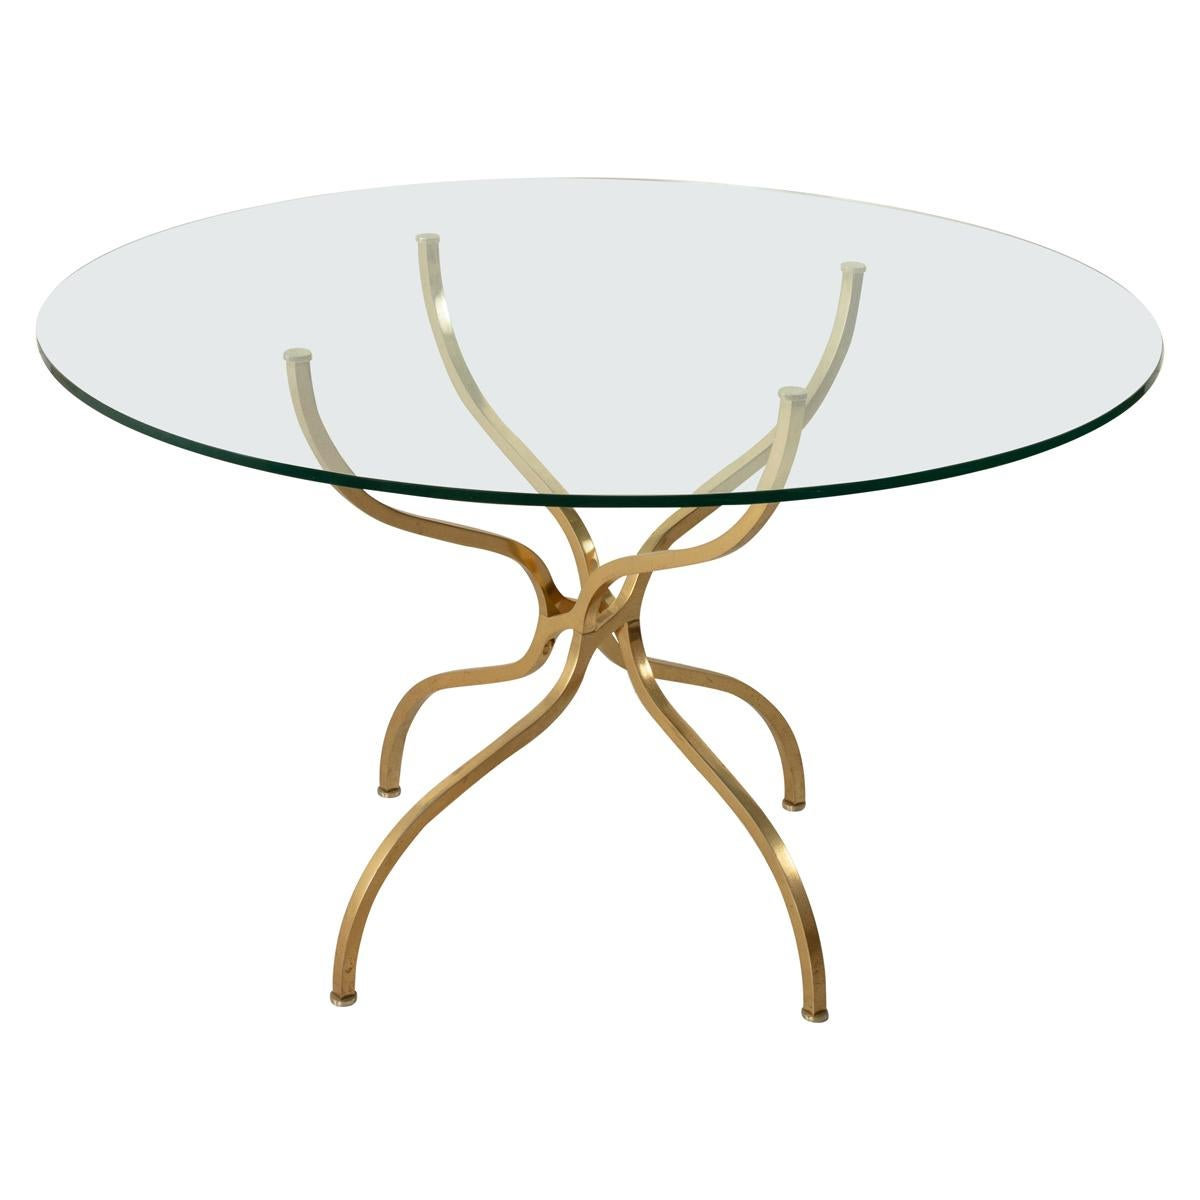 Mid-20th Century Gilt Brass and Glass Entry or Dining Table by Georges Geffroy